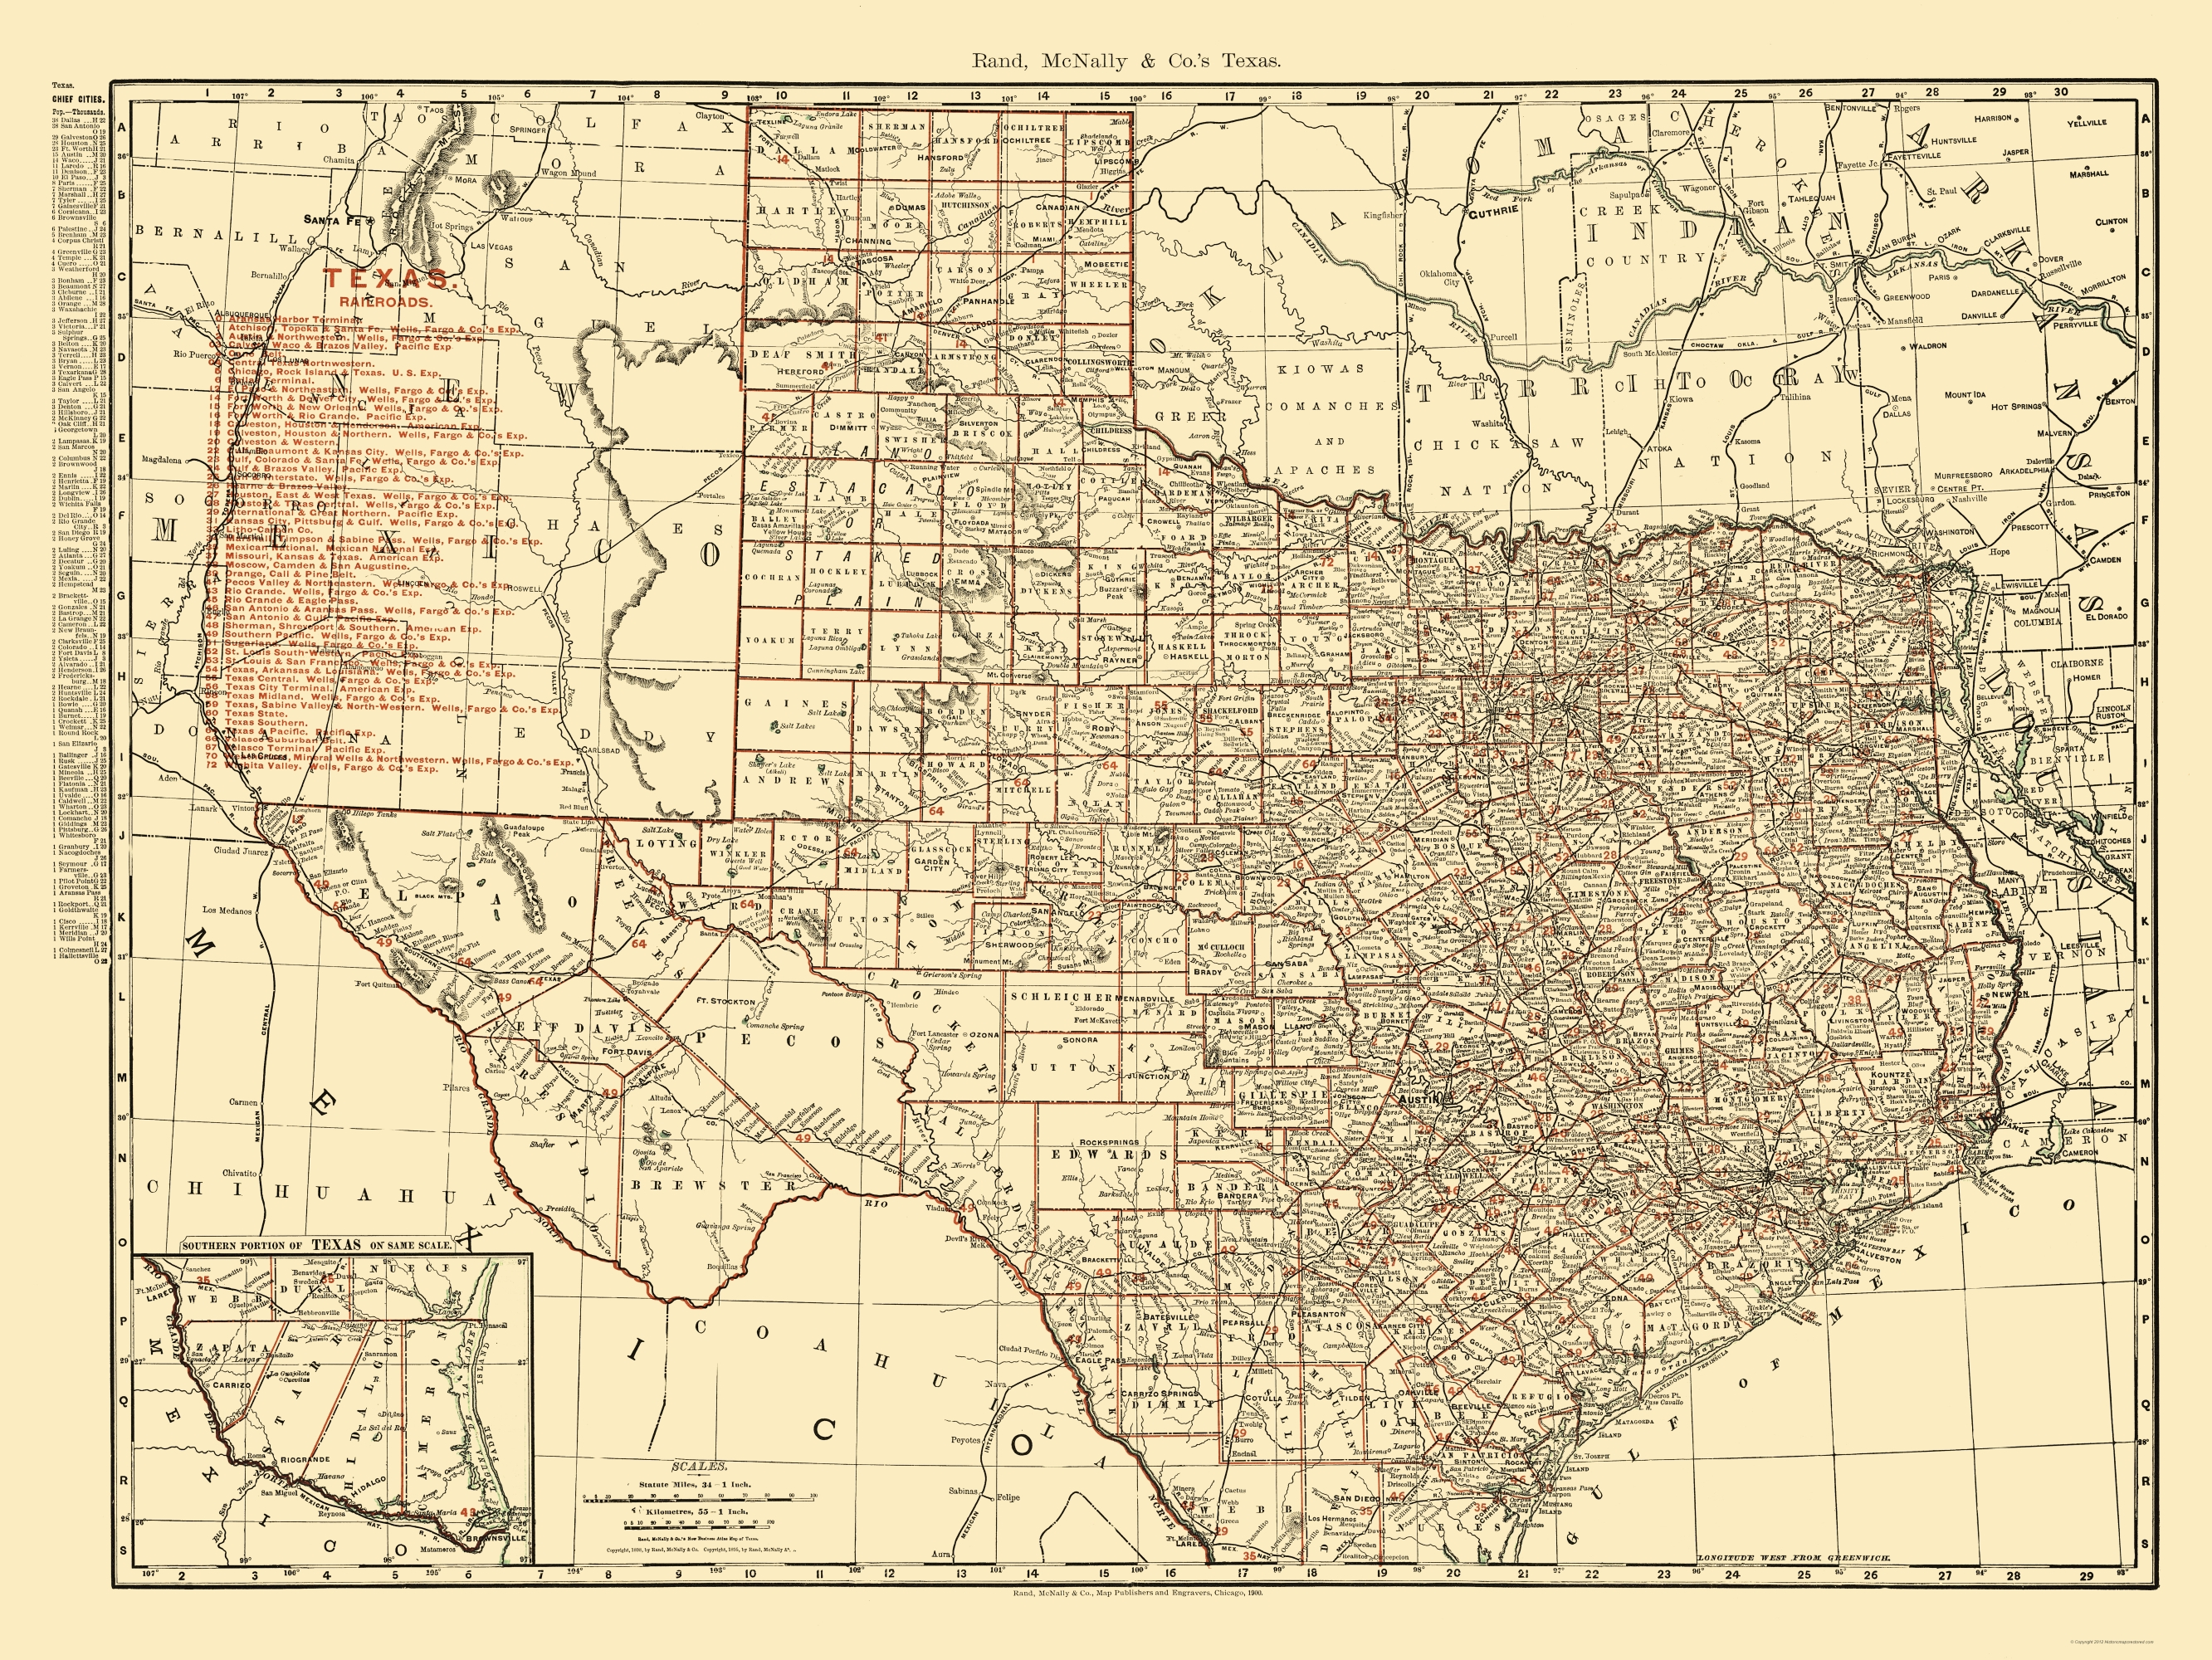 Map Of America 1900.Old Railroad Map Texas State Railroads Rand Mcnally 1900 23 X